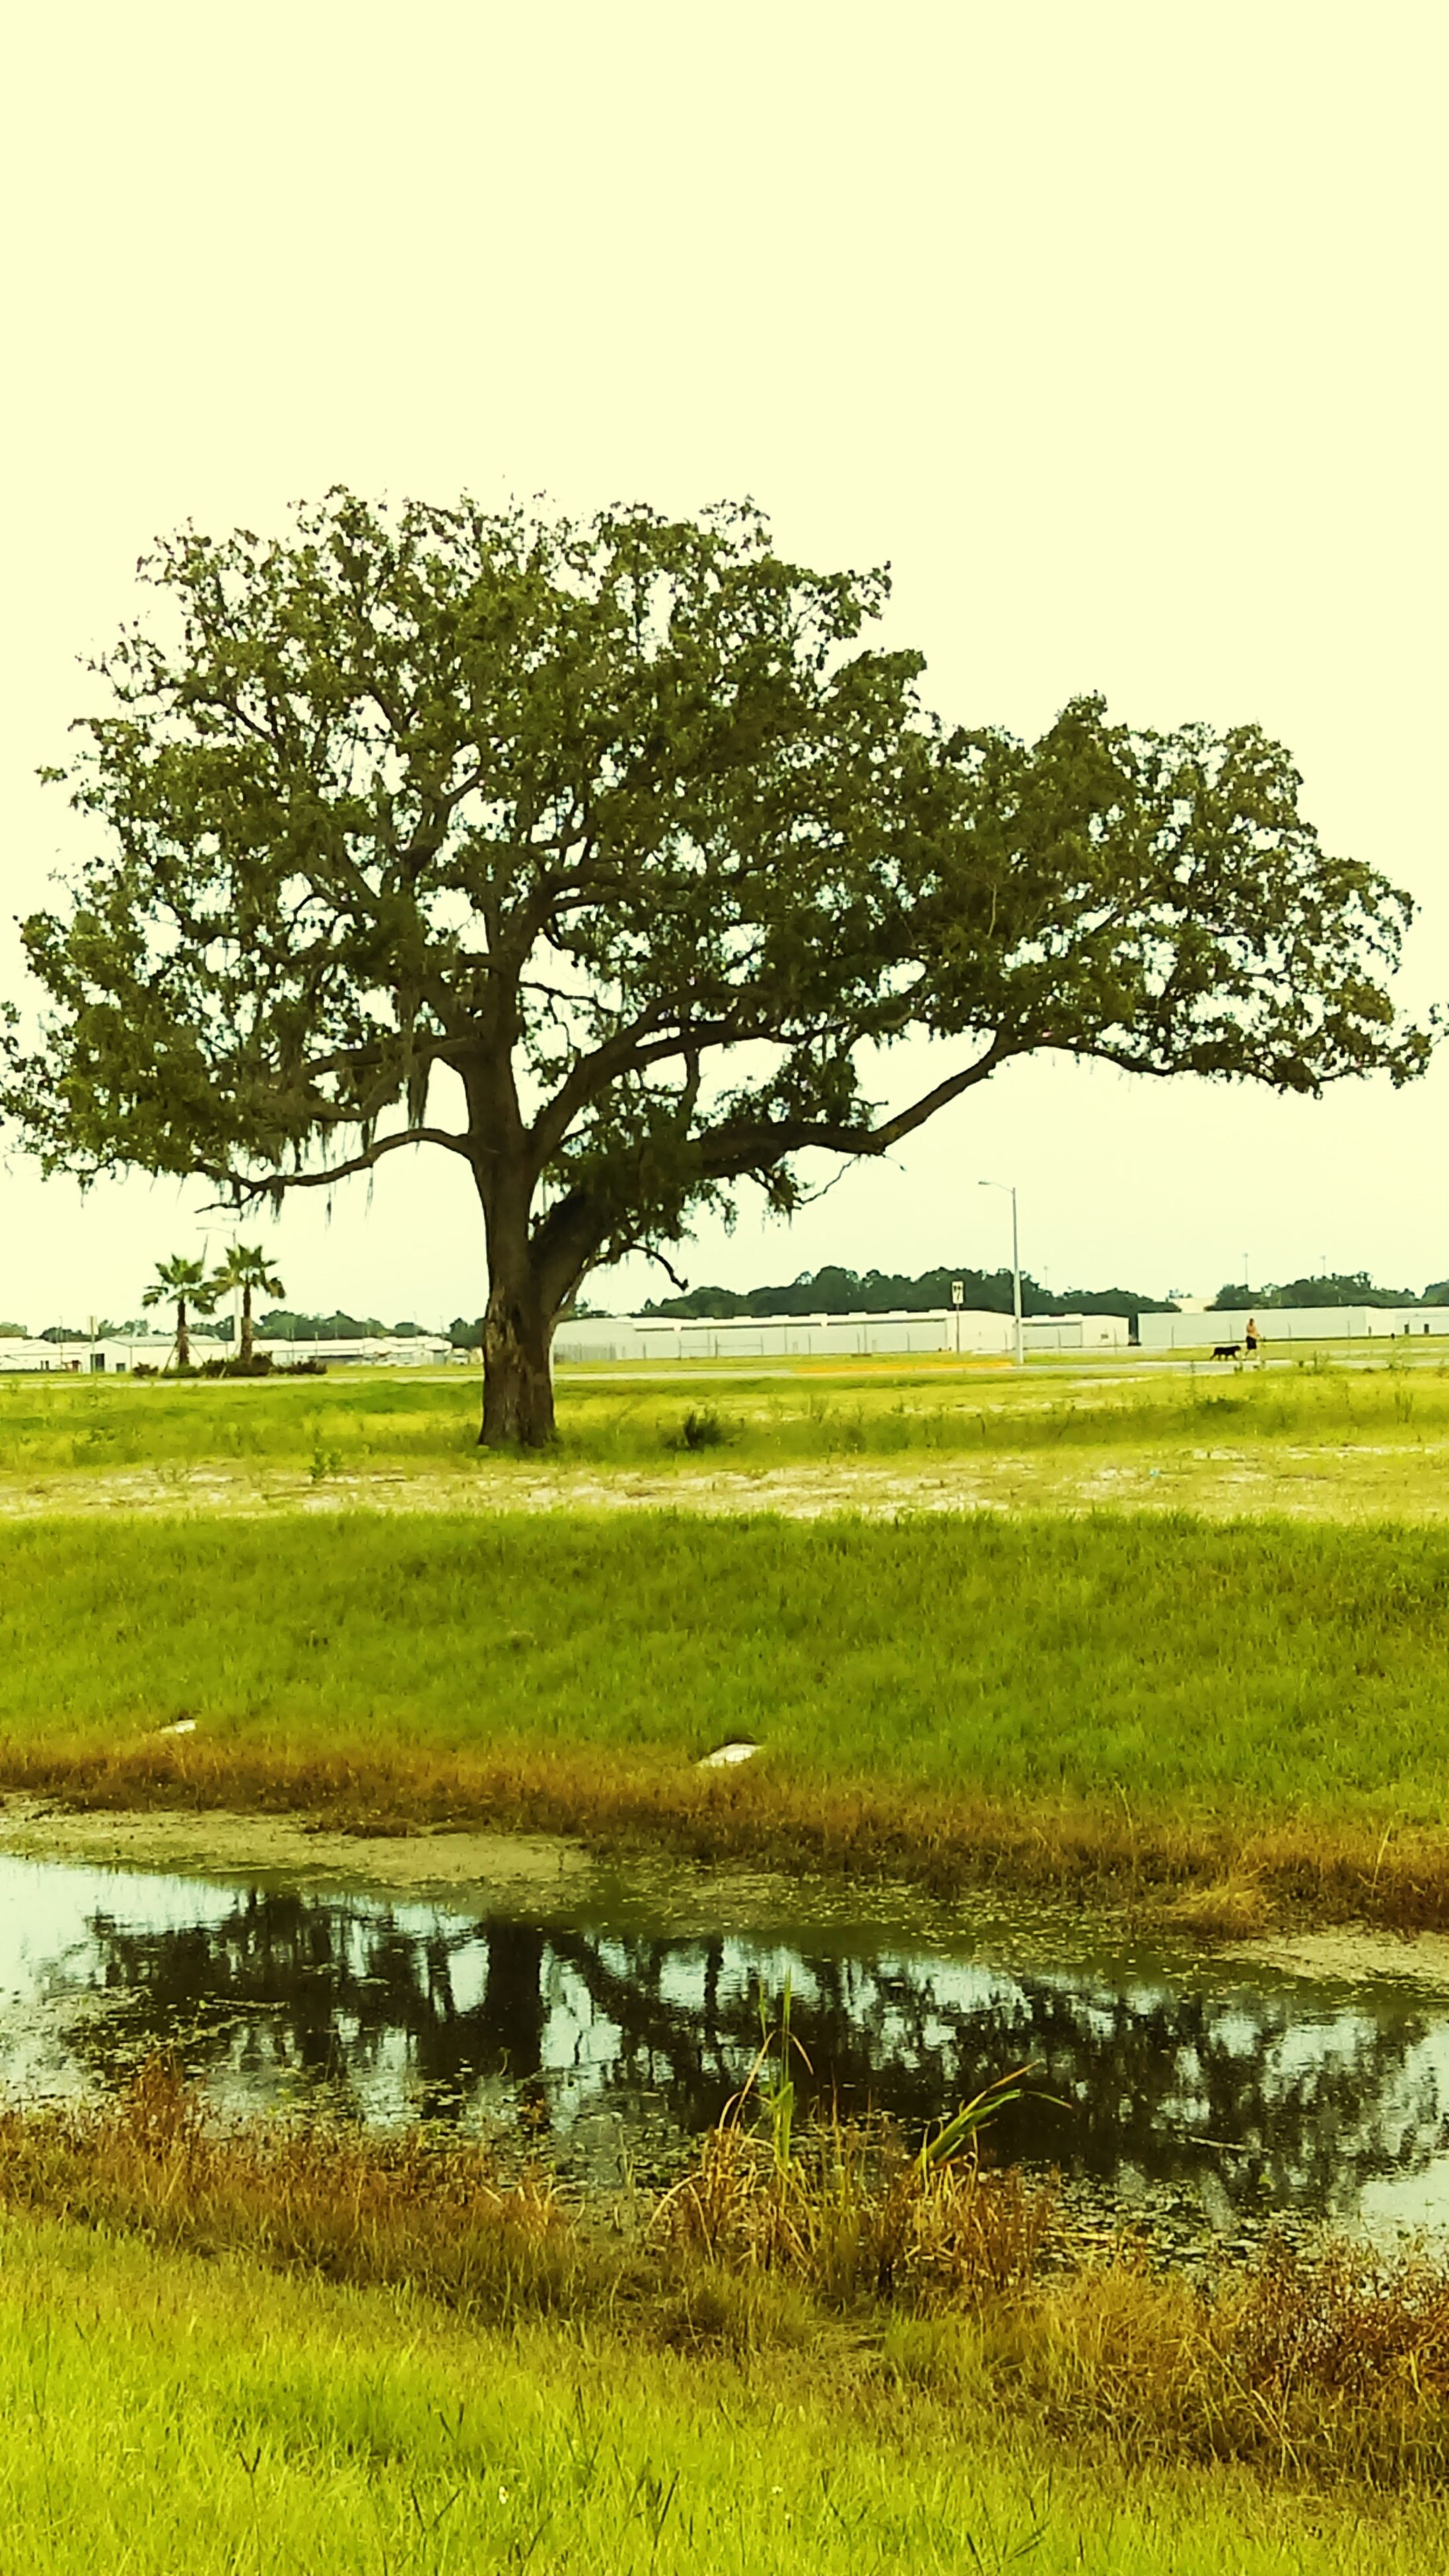 grass, tree, water, tranquility, tranquil scene, green color, field, grassy, nature, scenics, lake, landscape, beauty in nature, clear sky, bare tree, growth, branch, sky, day, reflection